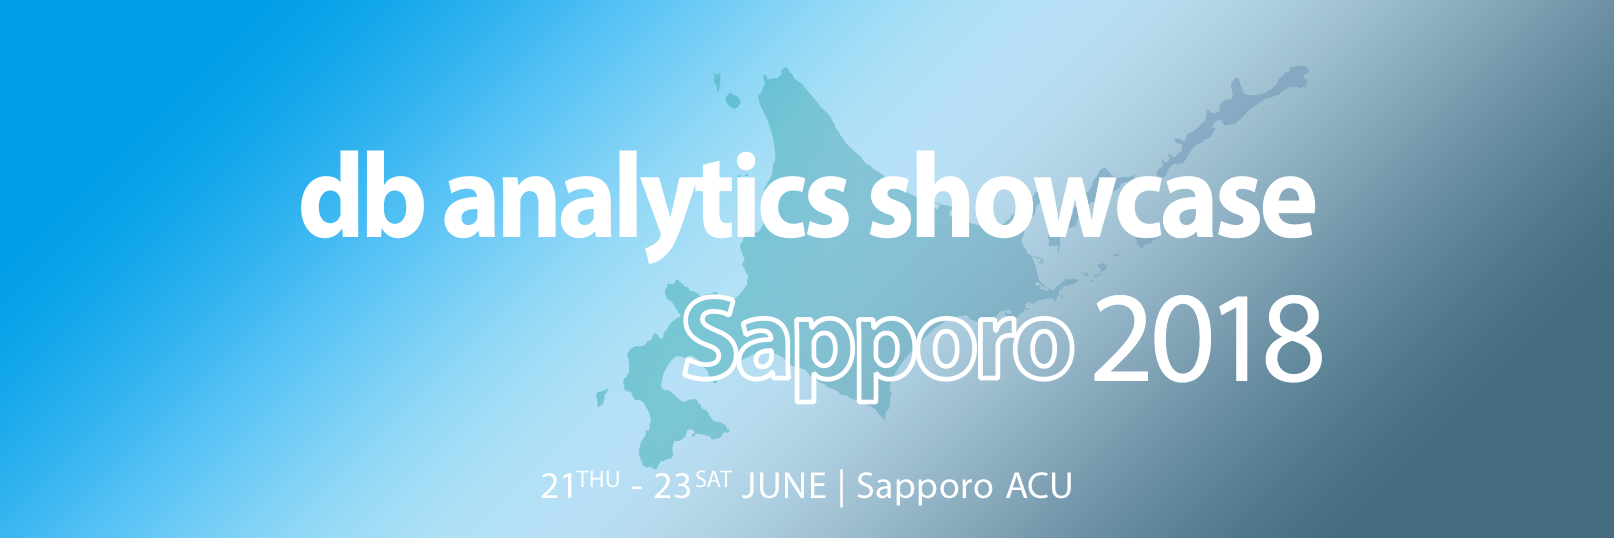 db analytics showcase Sapporo 2018